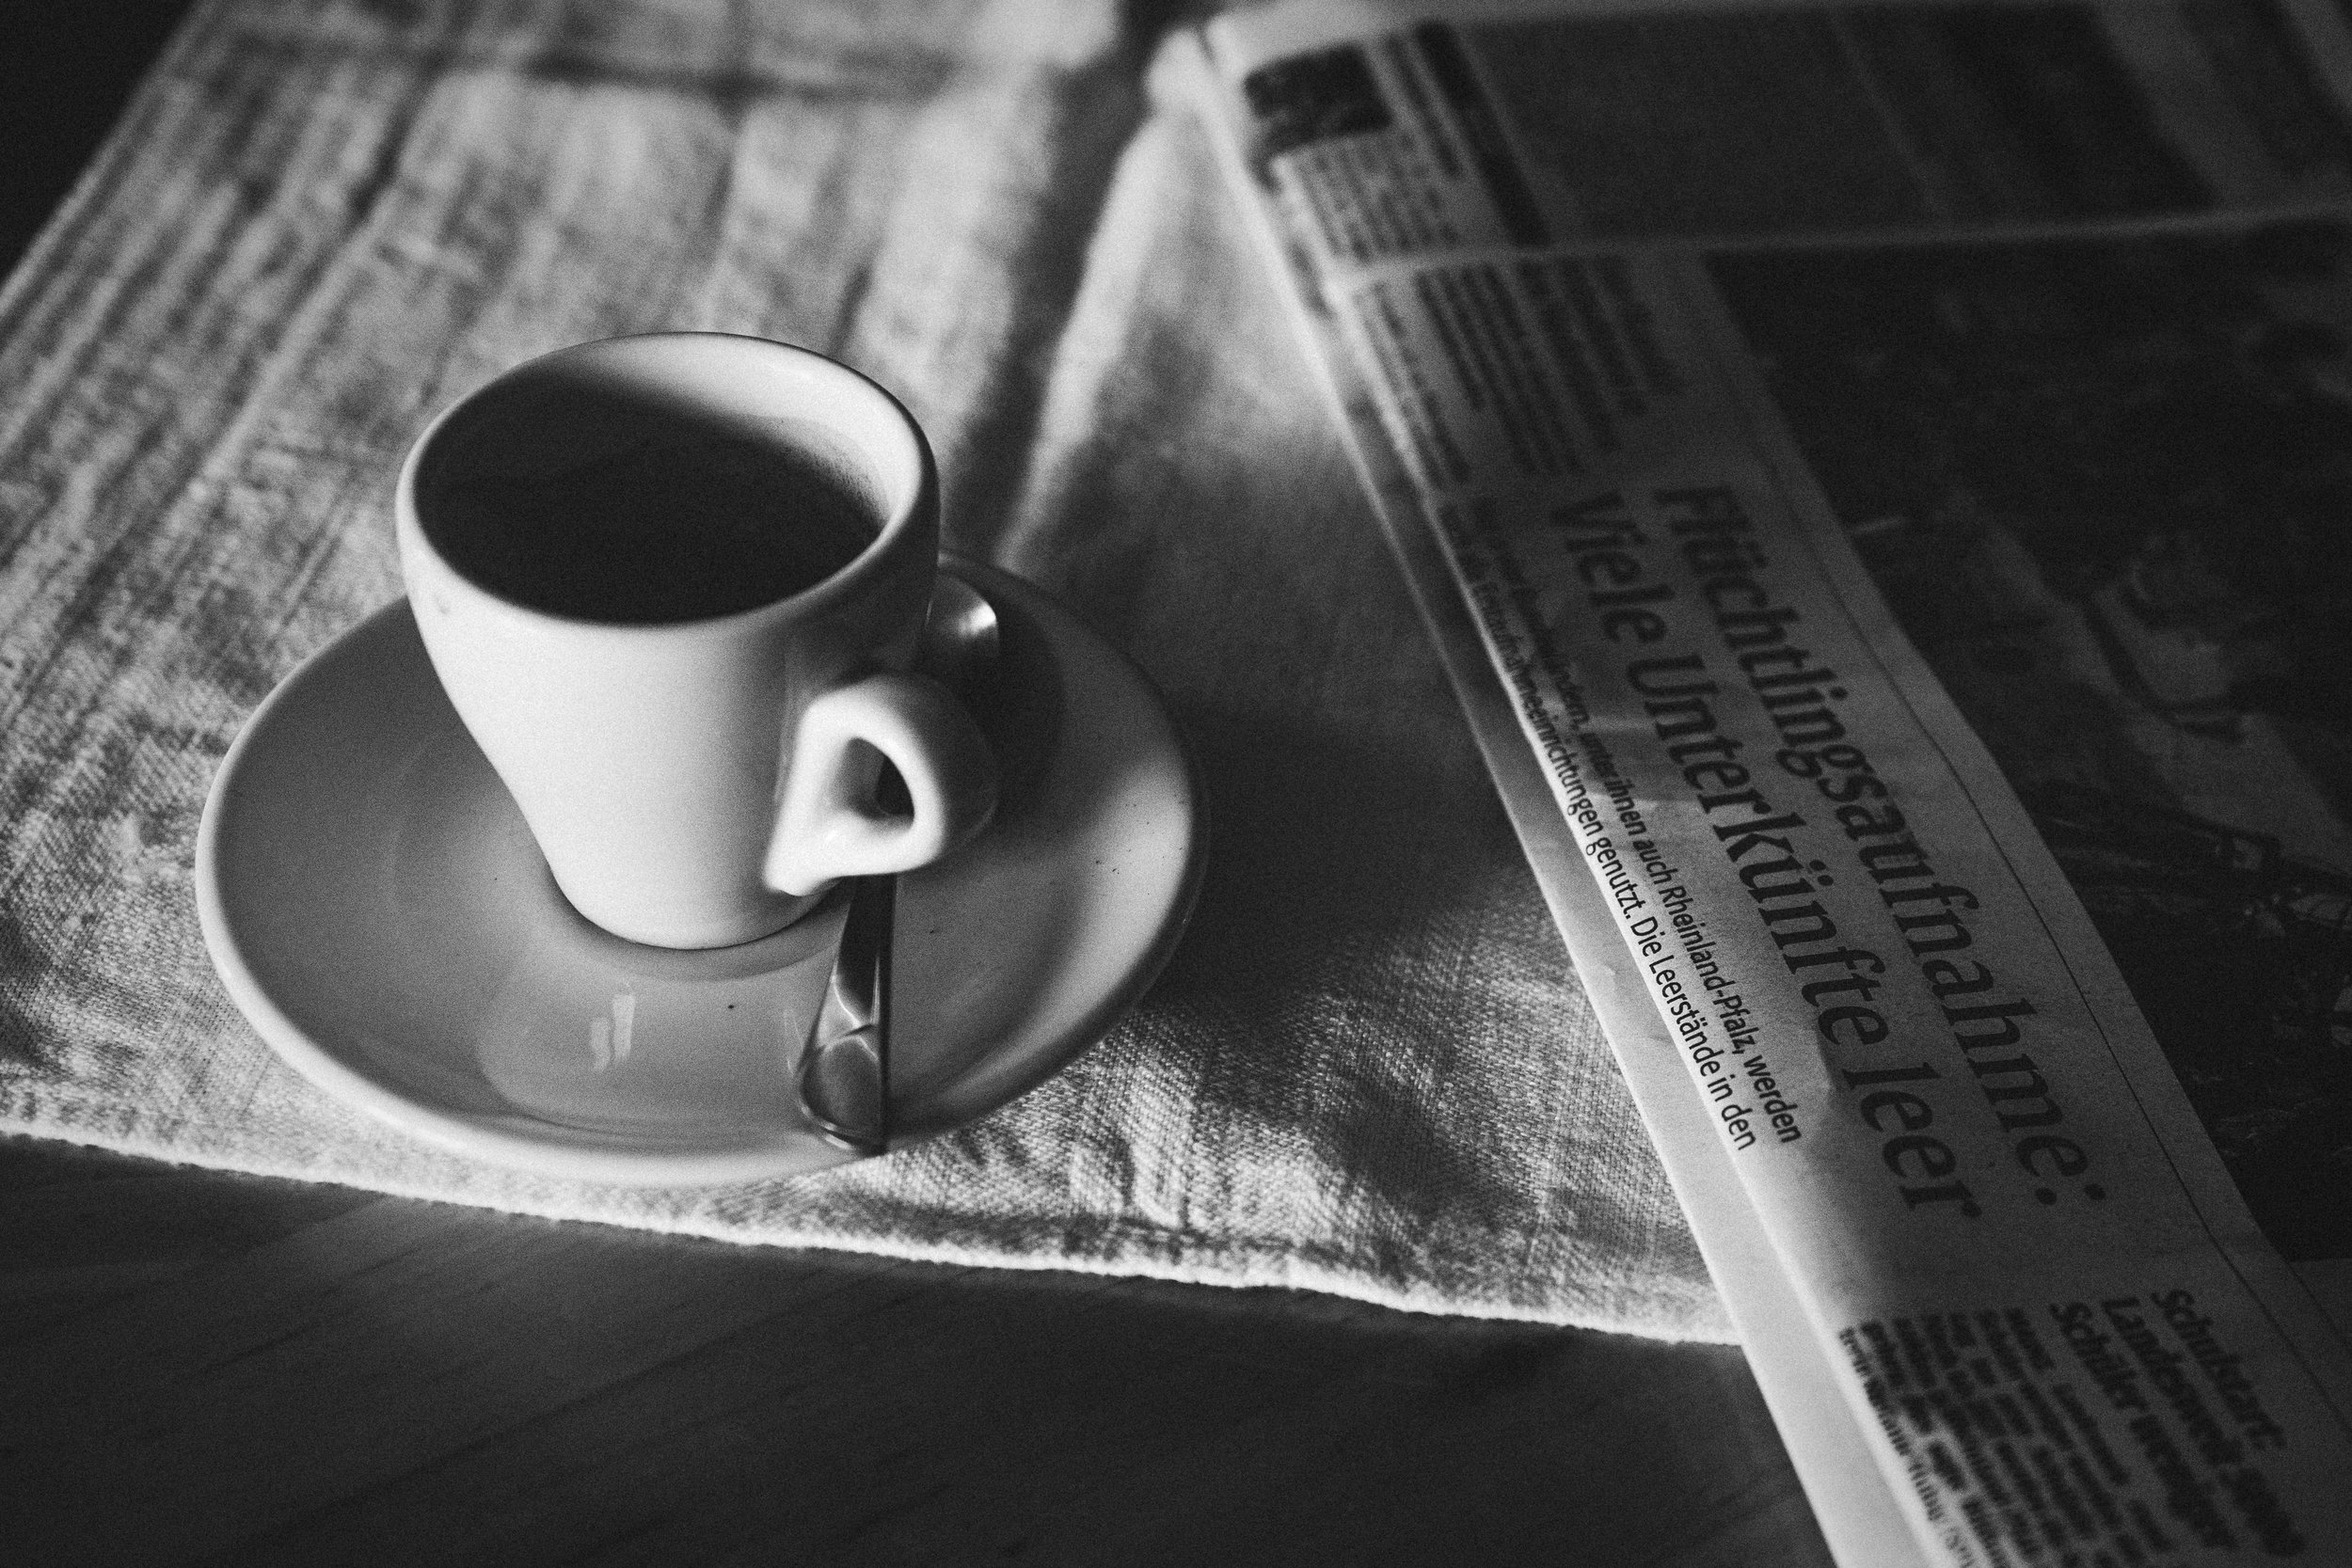 An espresso cup sits on a tablecloth next to a newspaper